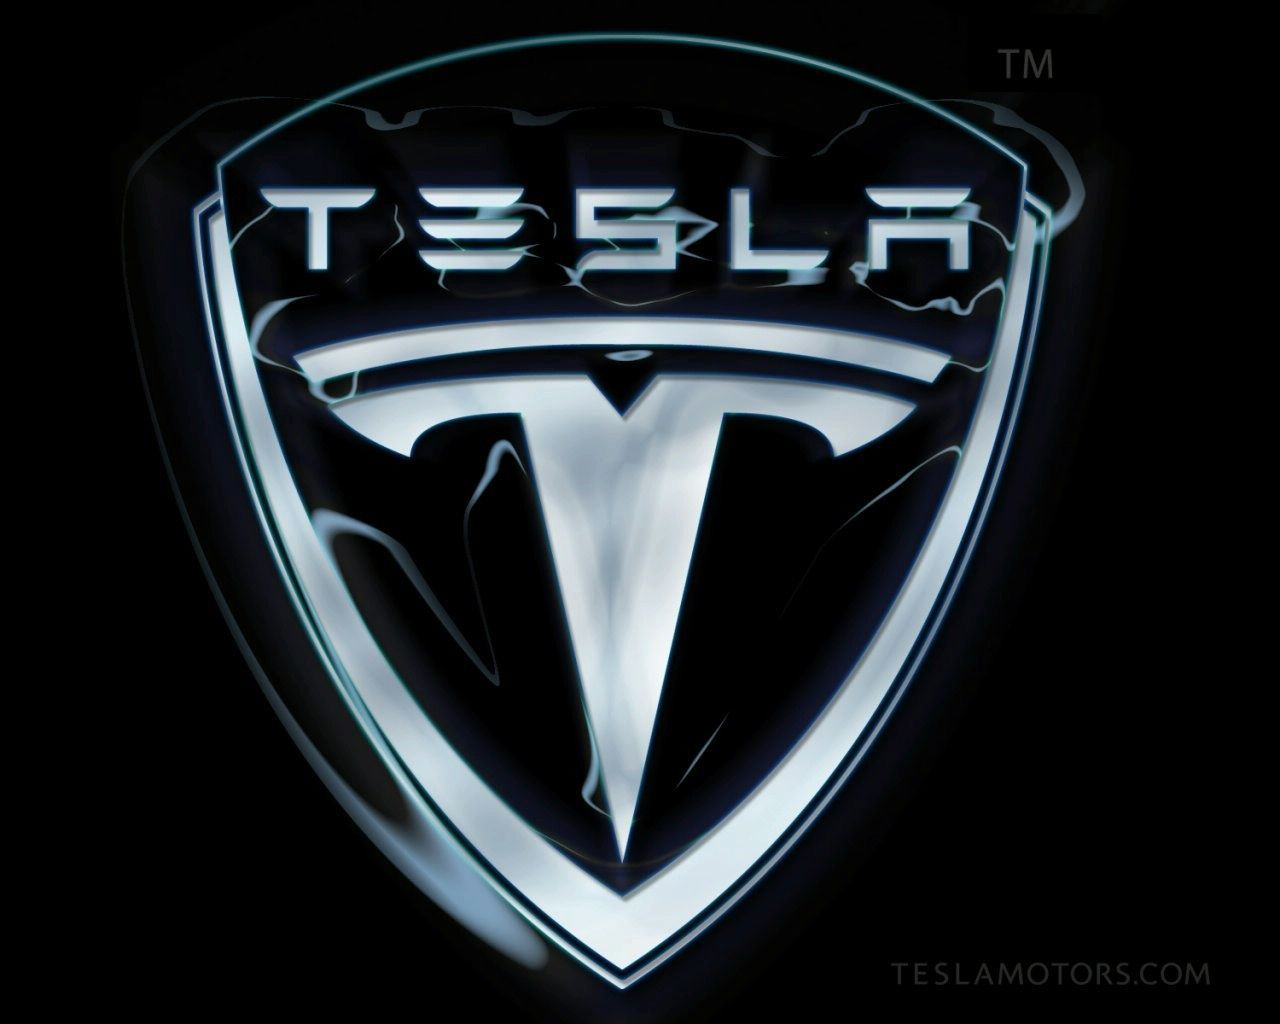 Tesla Motors Logo | Automotive | Pinterest | Tesla motors, Logos and ...